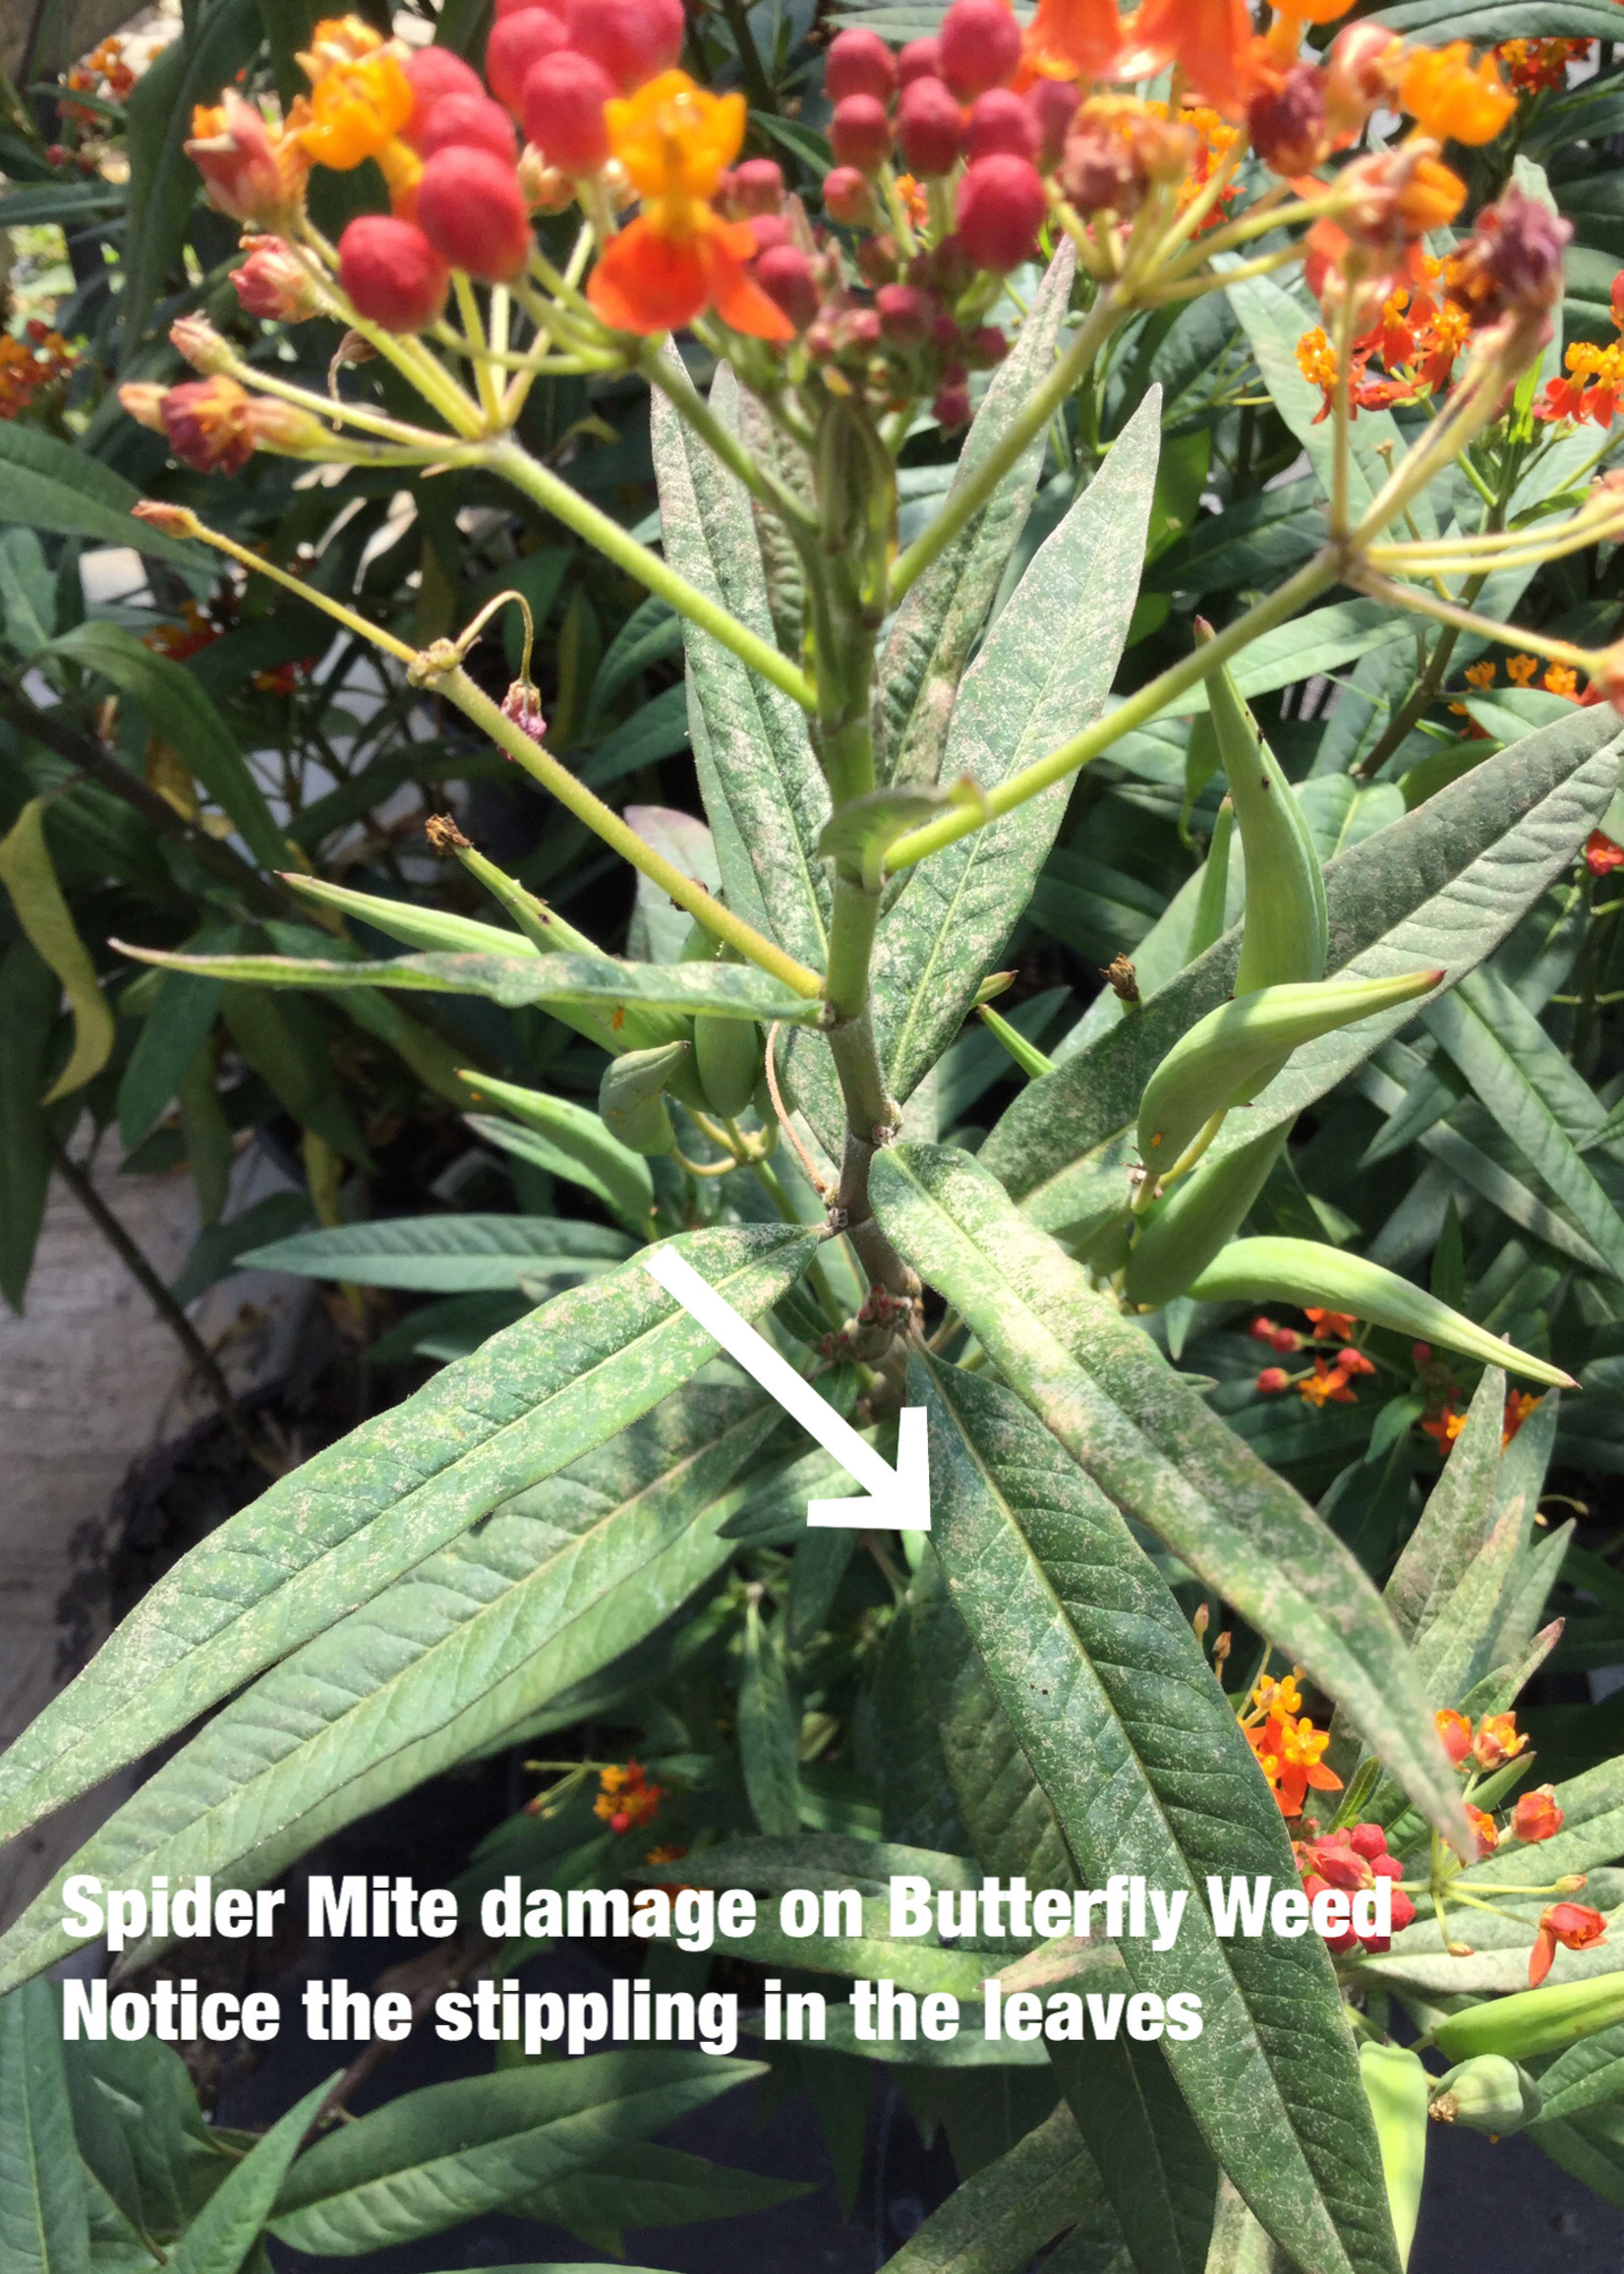 Insect, Spider Mite